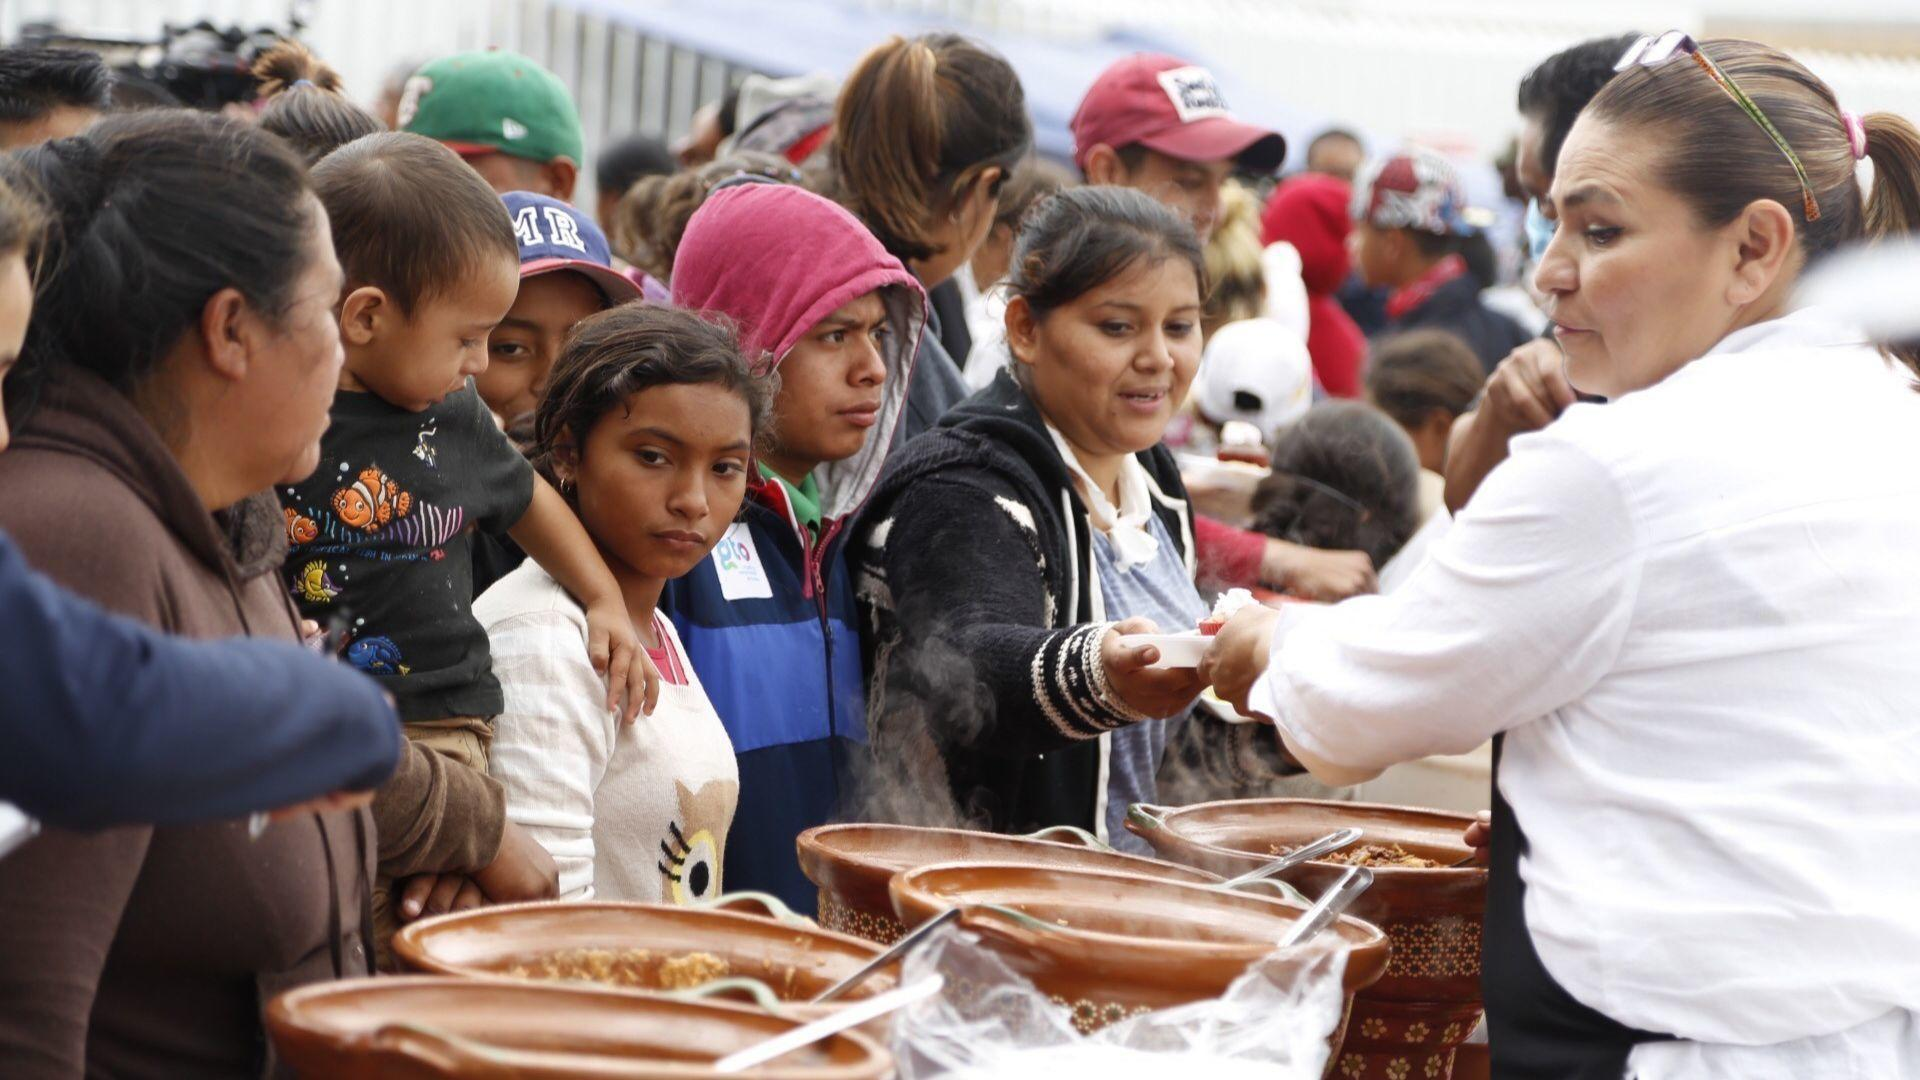 First Central American caravan members admitted at San Ysidro Port of Entry